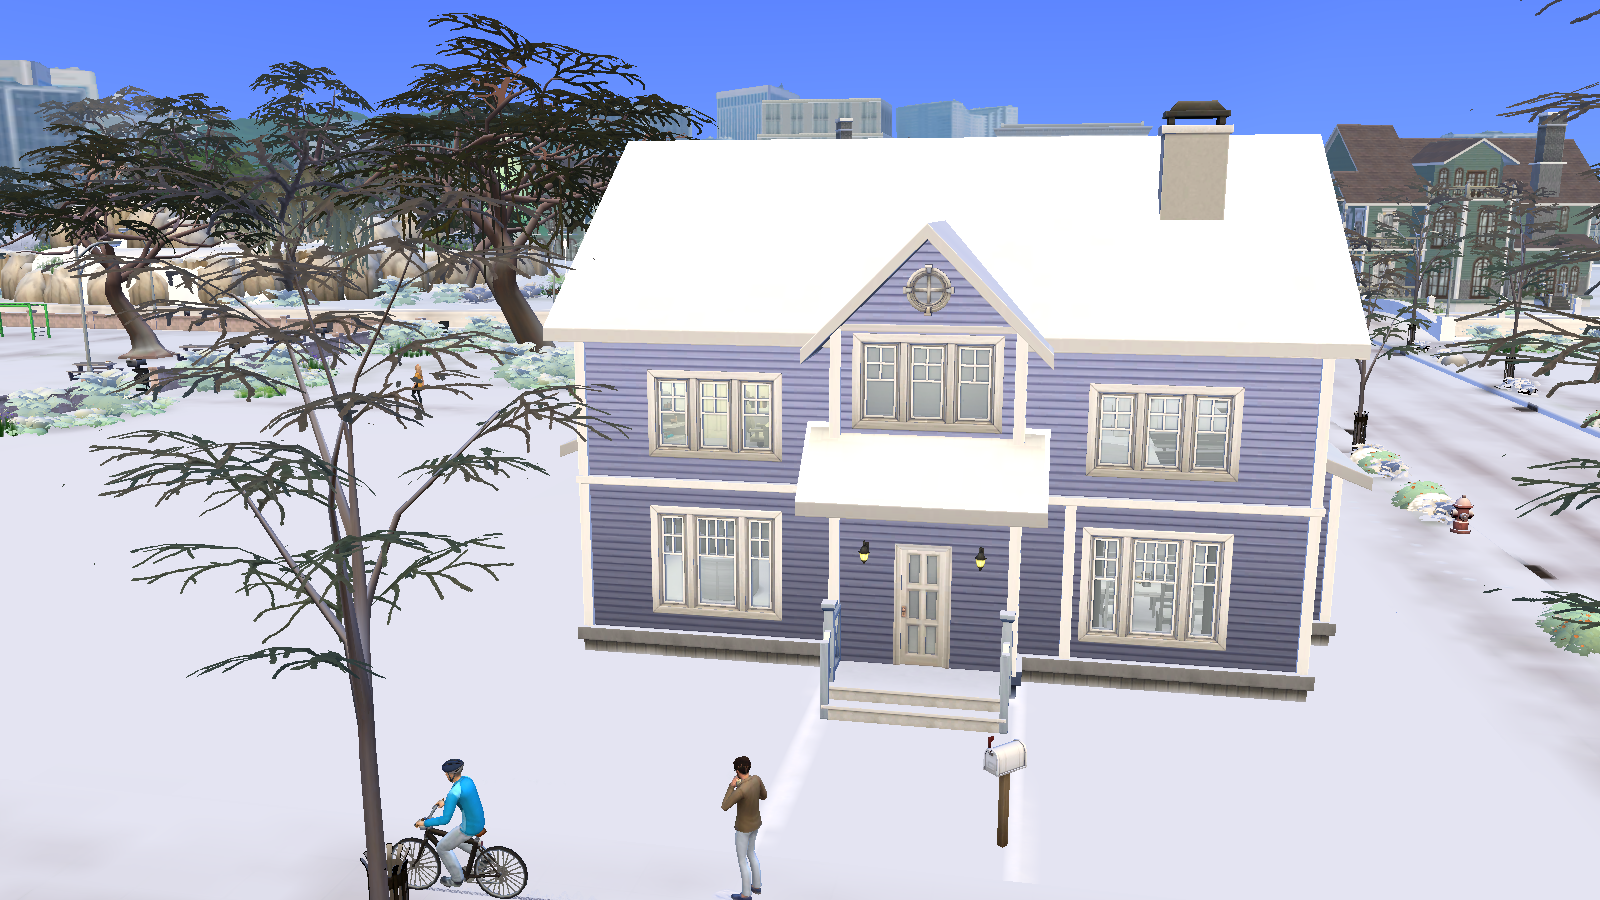 My perfect family house